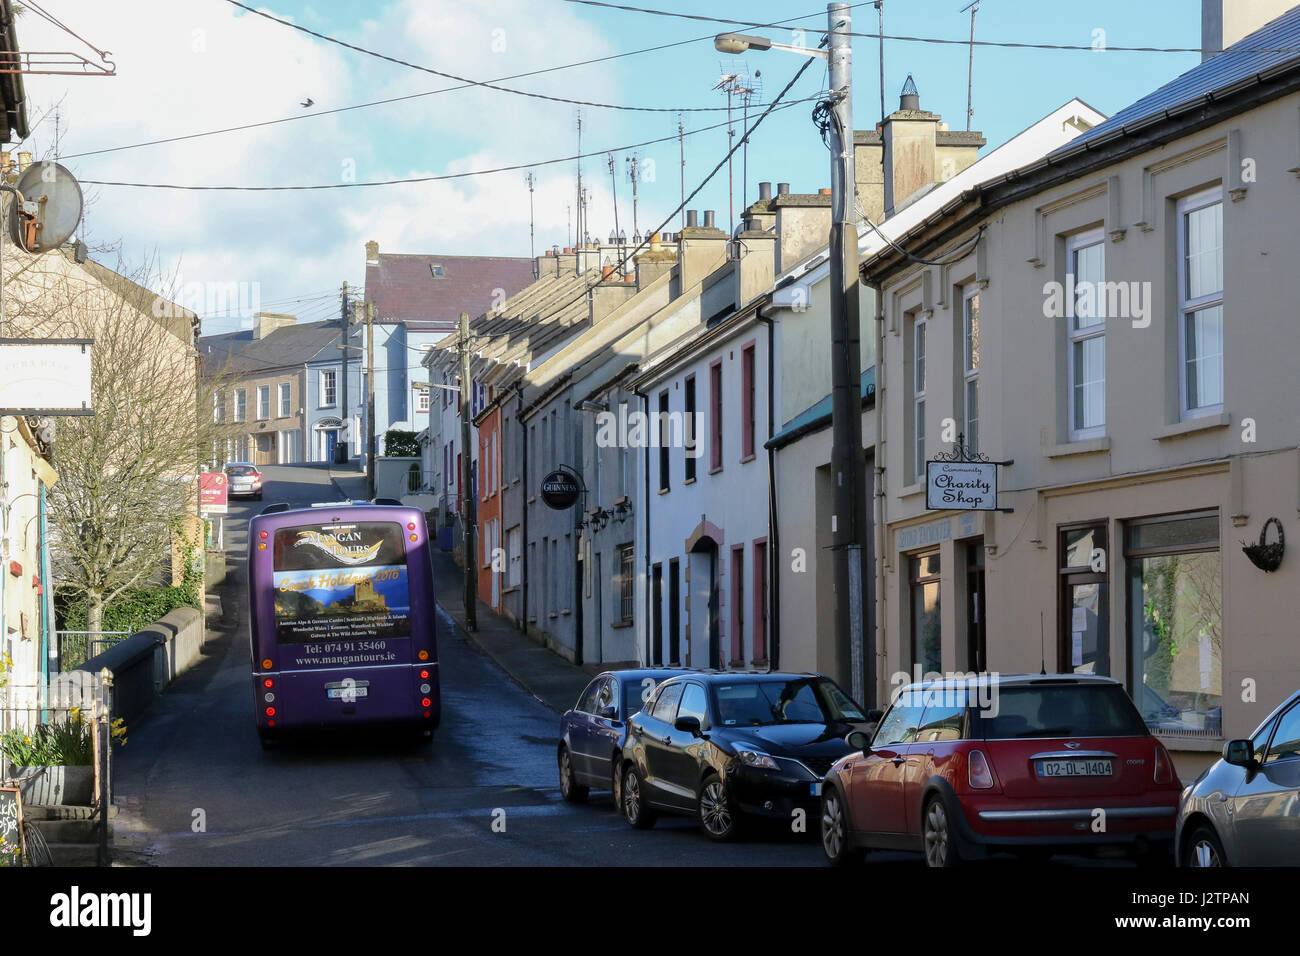 Bridge Street and The Mall in Ramelton, County Donegal, Ireland. - Stock Image